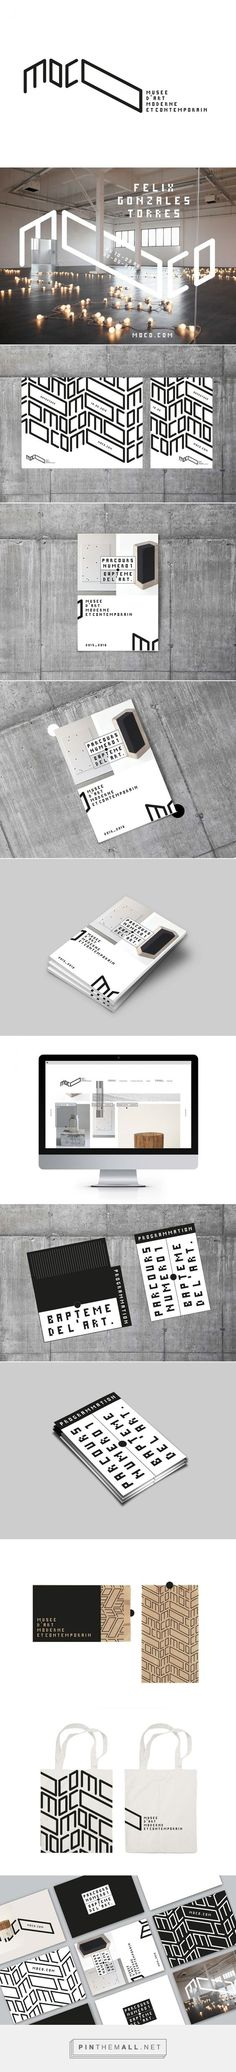 MOCO - VISUAL IDENTITY & BRANDING on Behance - created via https://pinthemall.net: